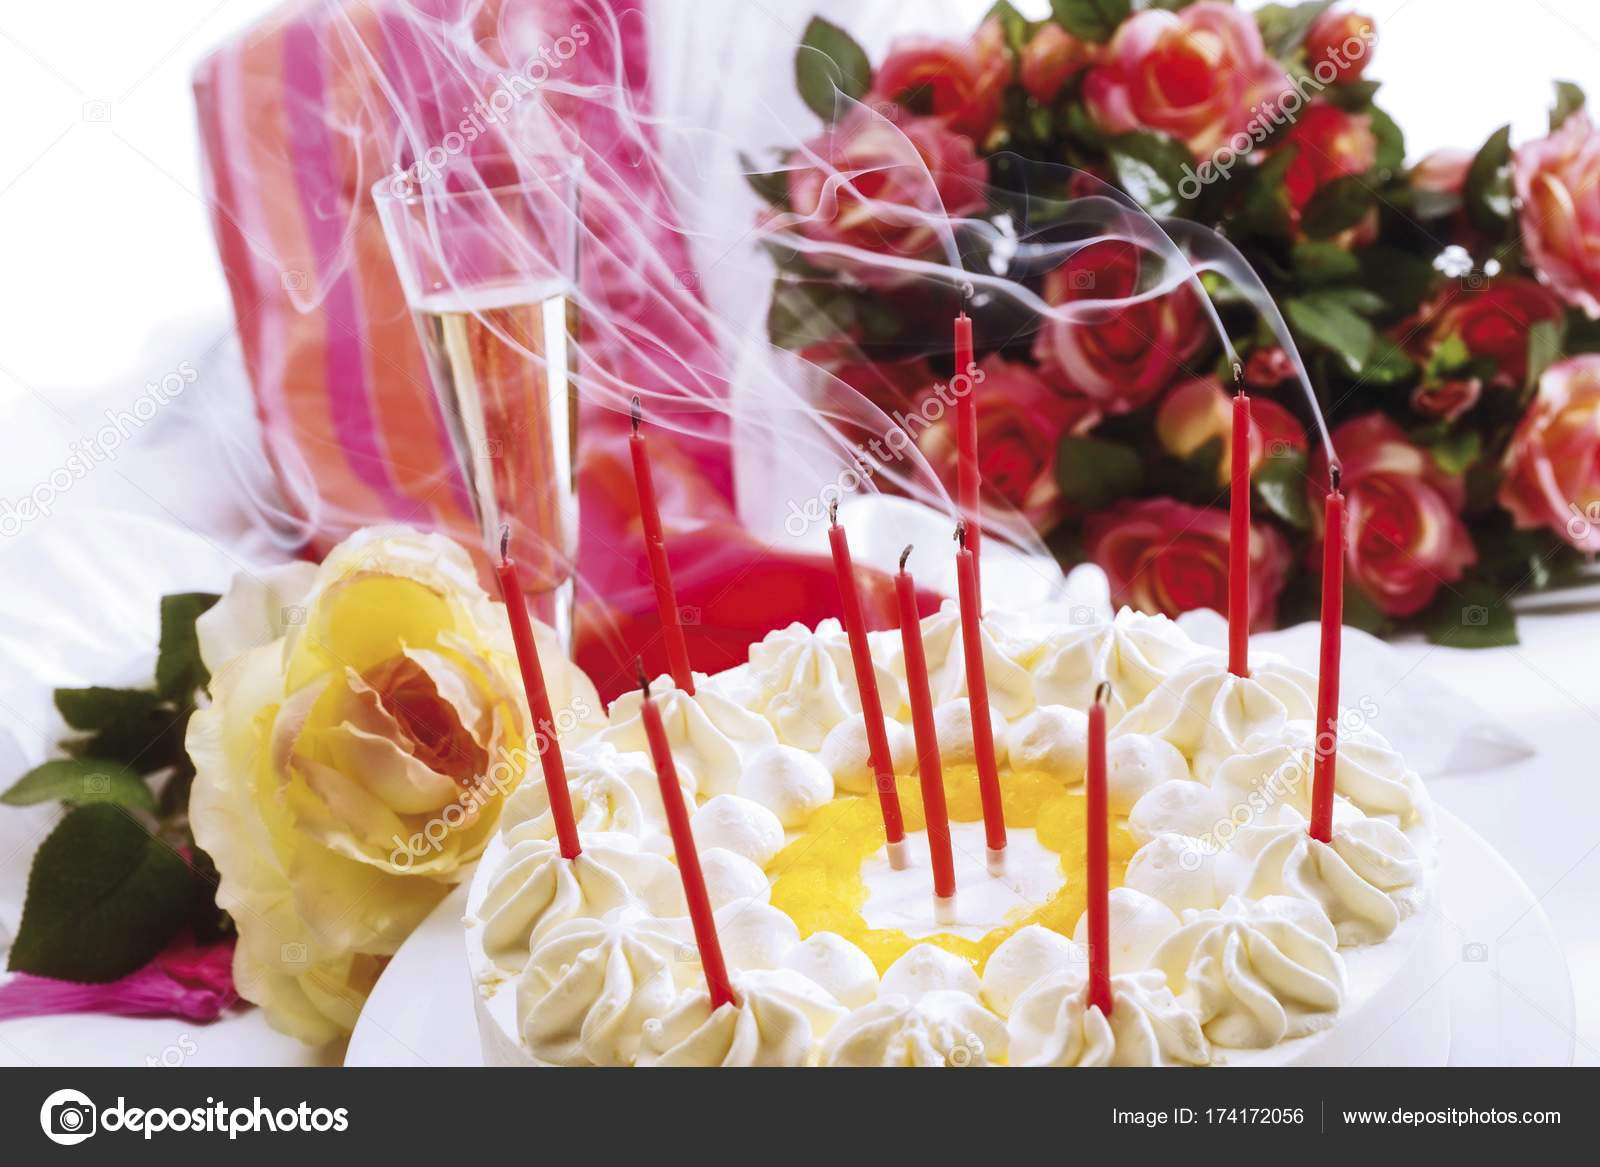 Blown out candles birthday cake bouquet roses gift background blown out candles birthday cake bouquet roses gift background stock photo izmirmasajfo